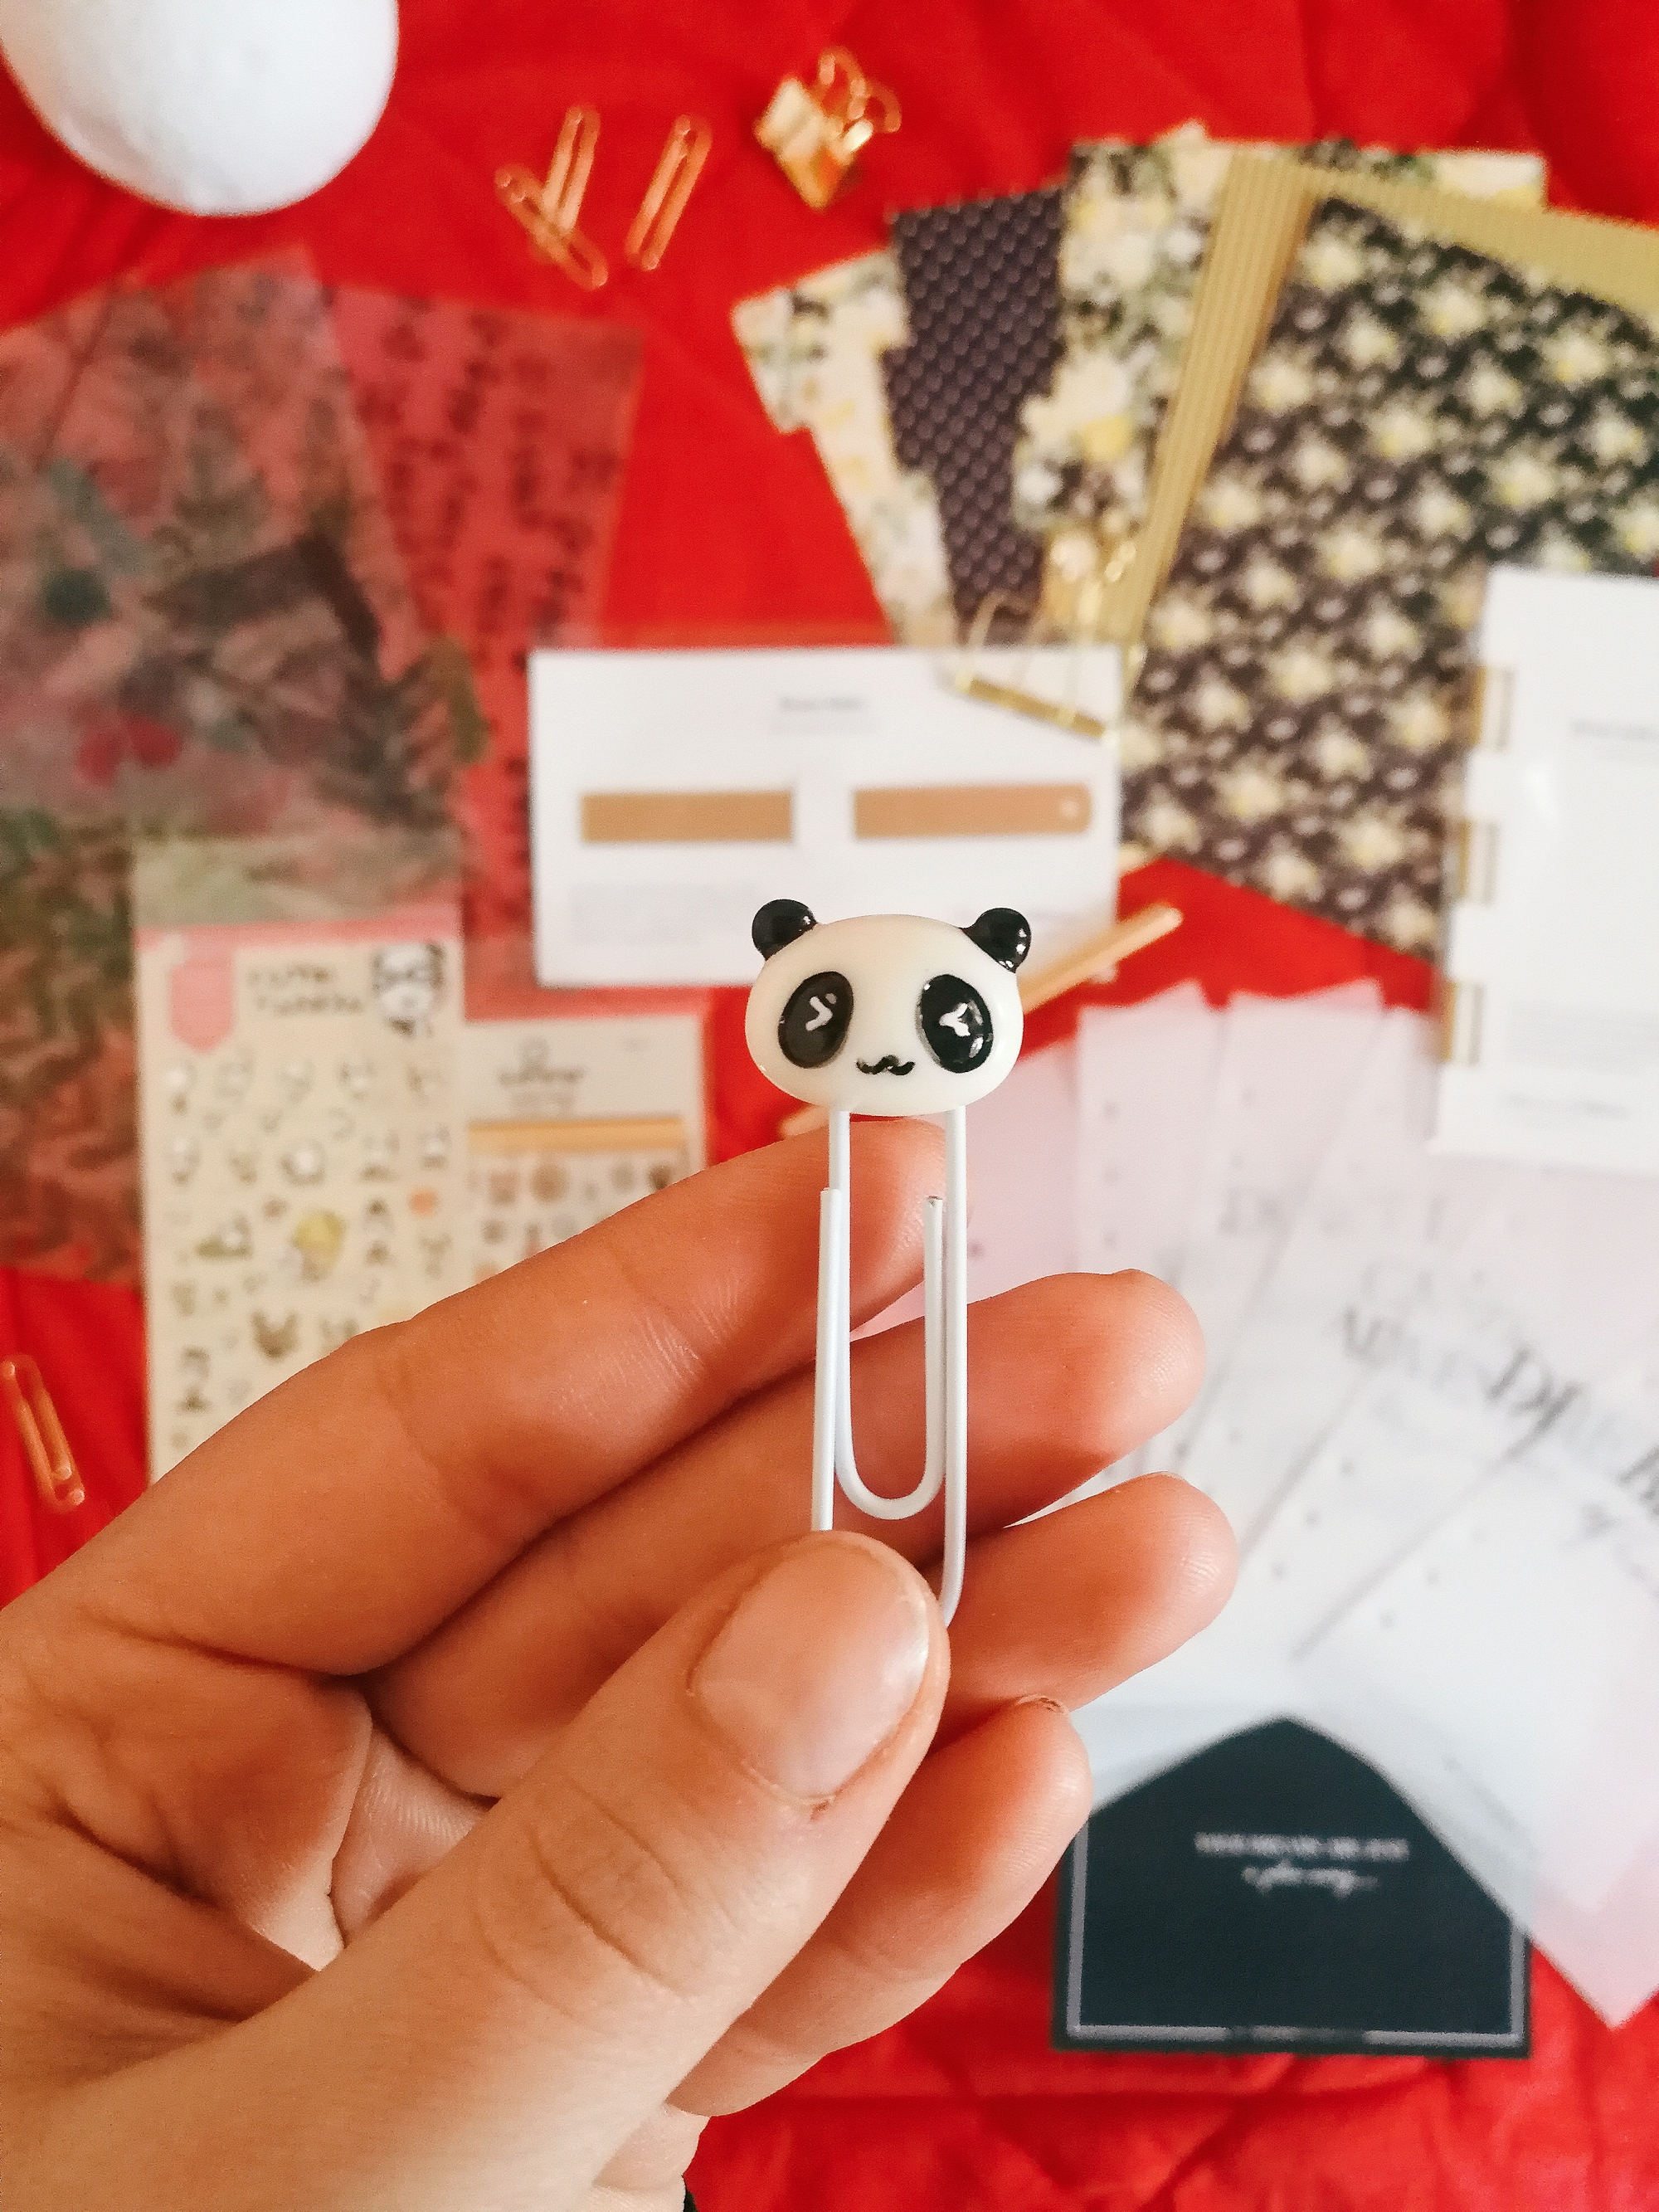 Planner Etsy Haul Panda Paper Clip ThePensnicketyCo